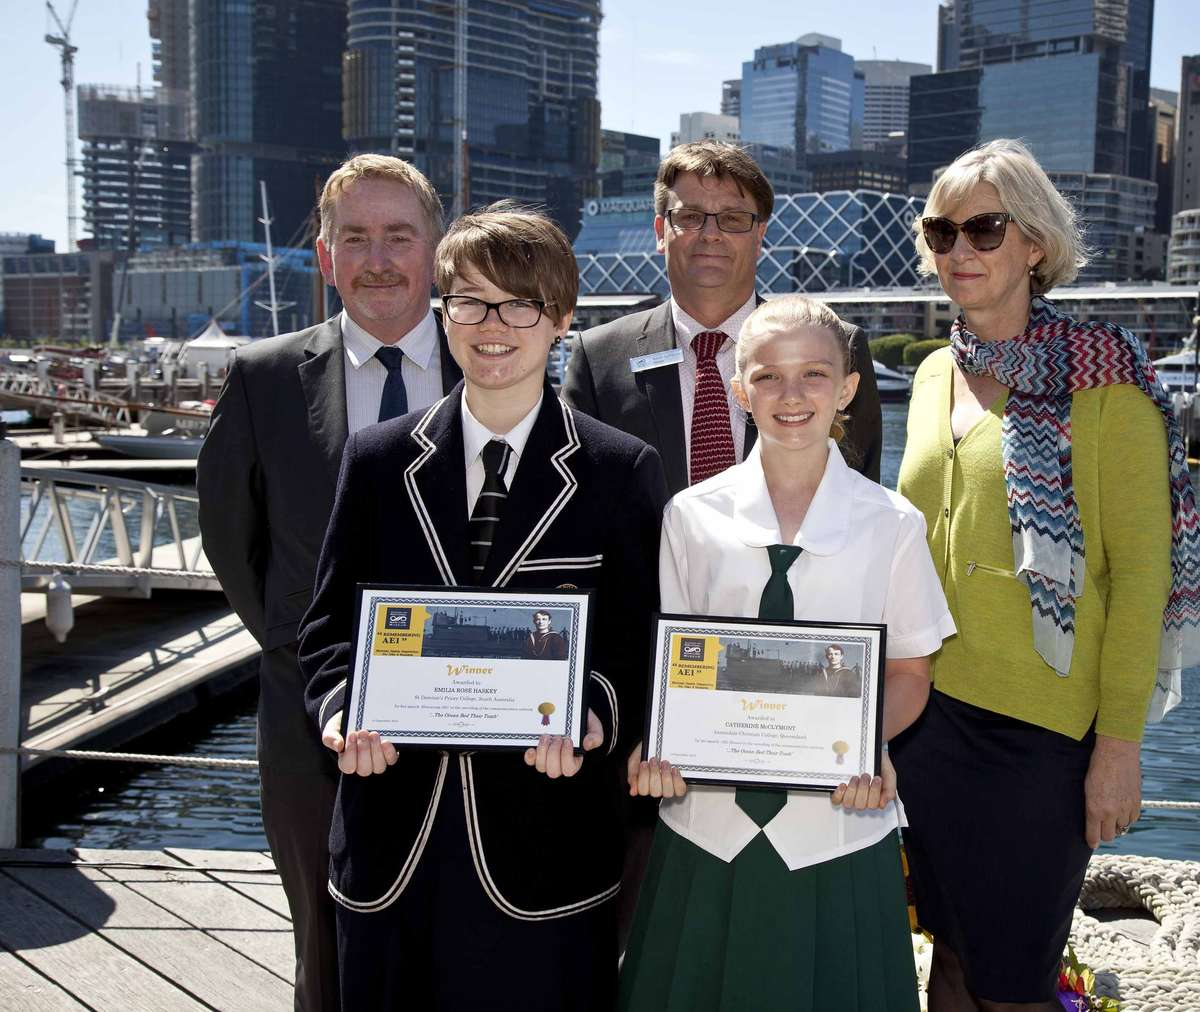 Student speech competition winners Emelia Rose Haskey and Catherine McClymont with ANMM Director Kevin Sumption (centre back) and judges Jeff Fletcher and Daina Fletcher.